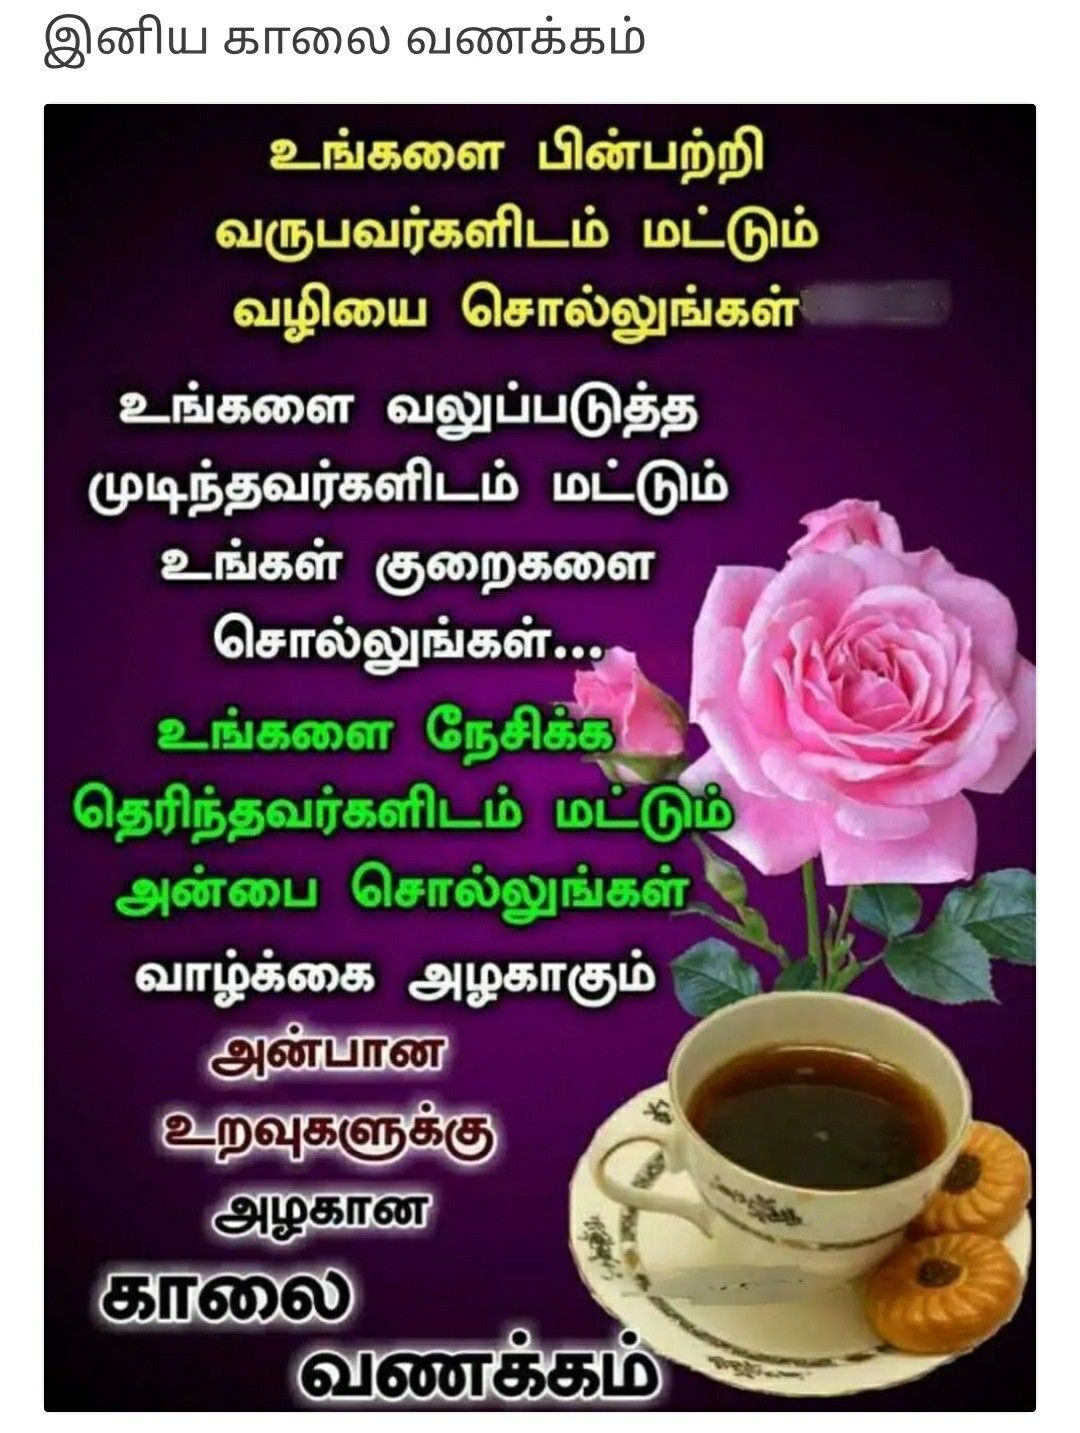 Pin By Pospavali On Morning Images Good Morning Wishes Love Me Quotes Tamil Motivational Quotes